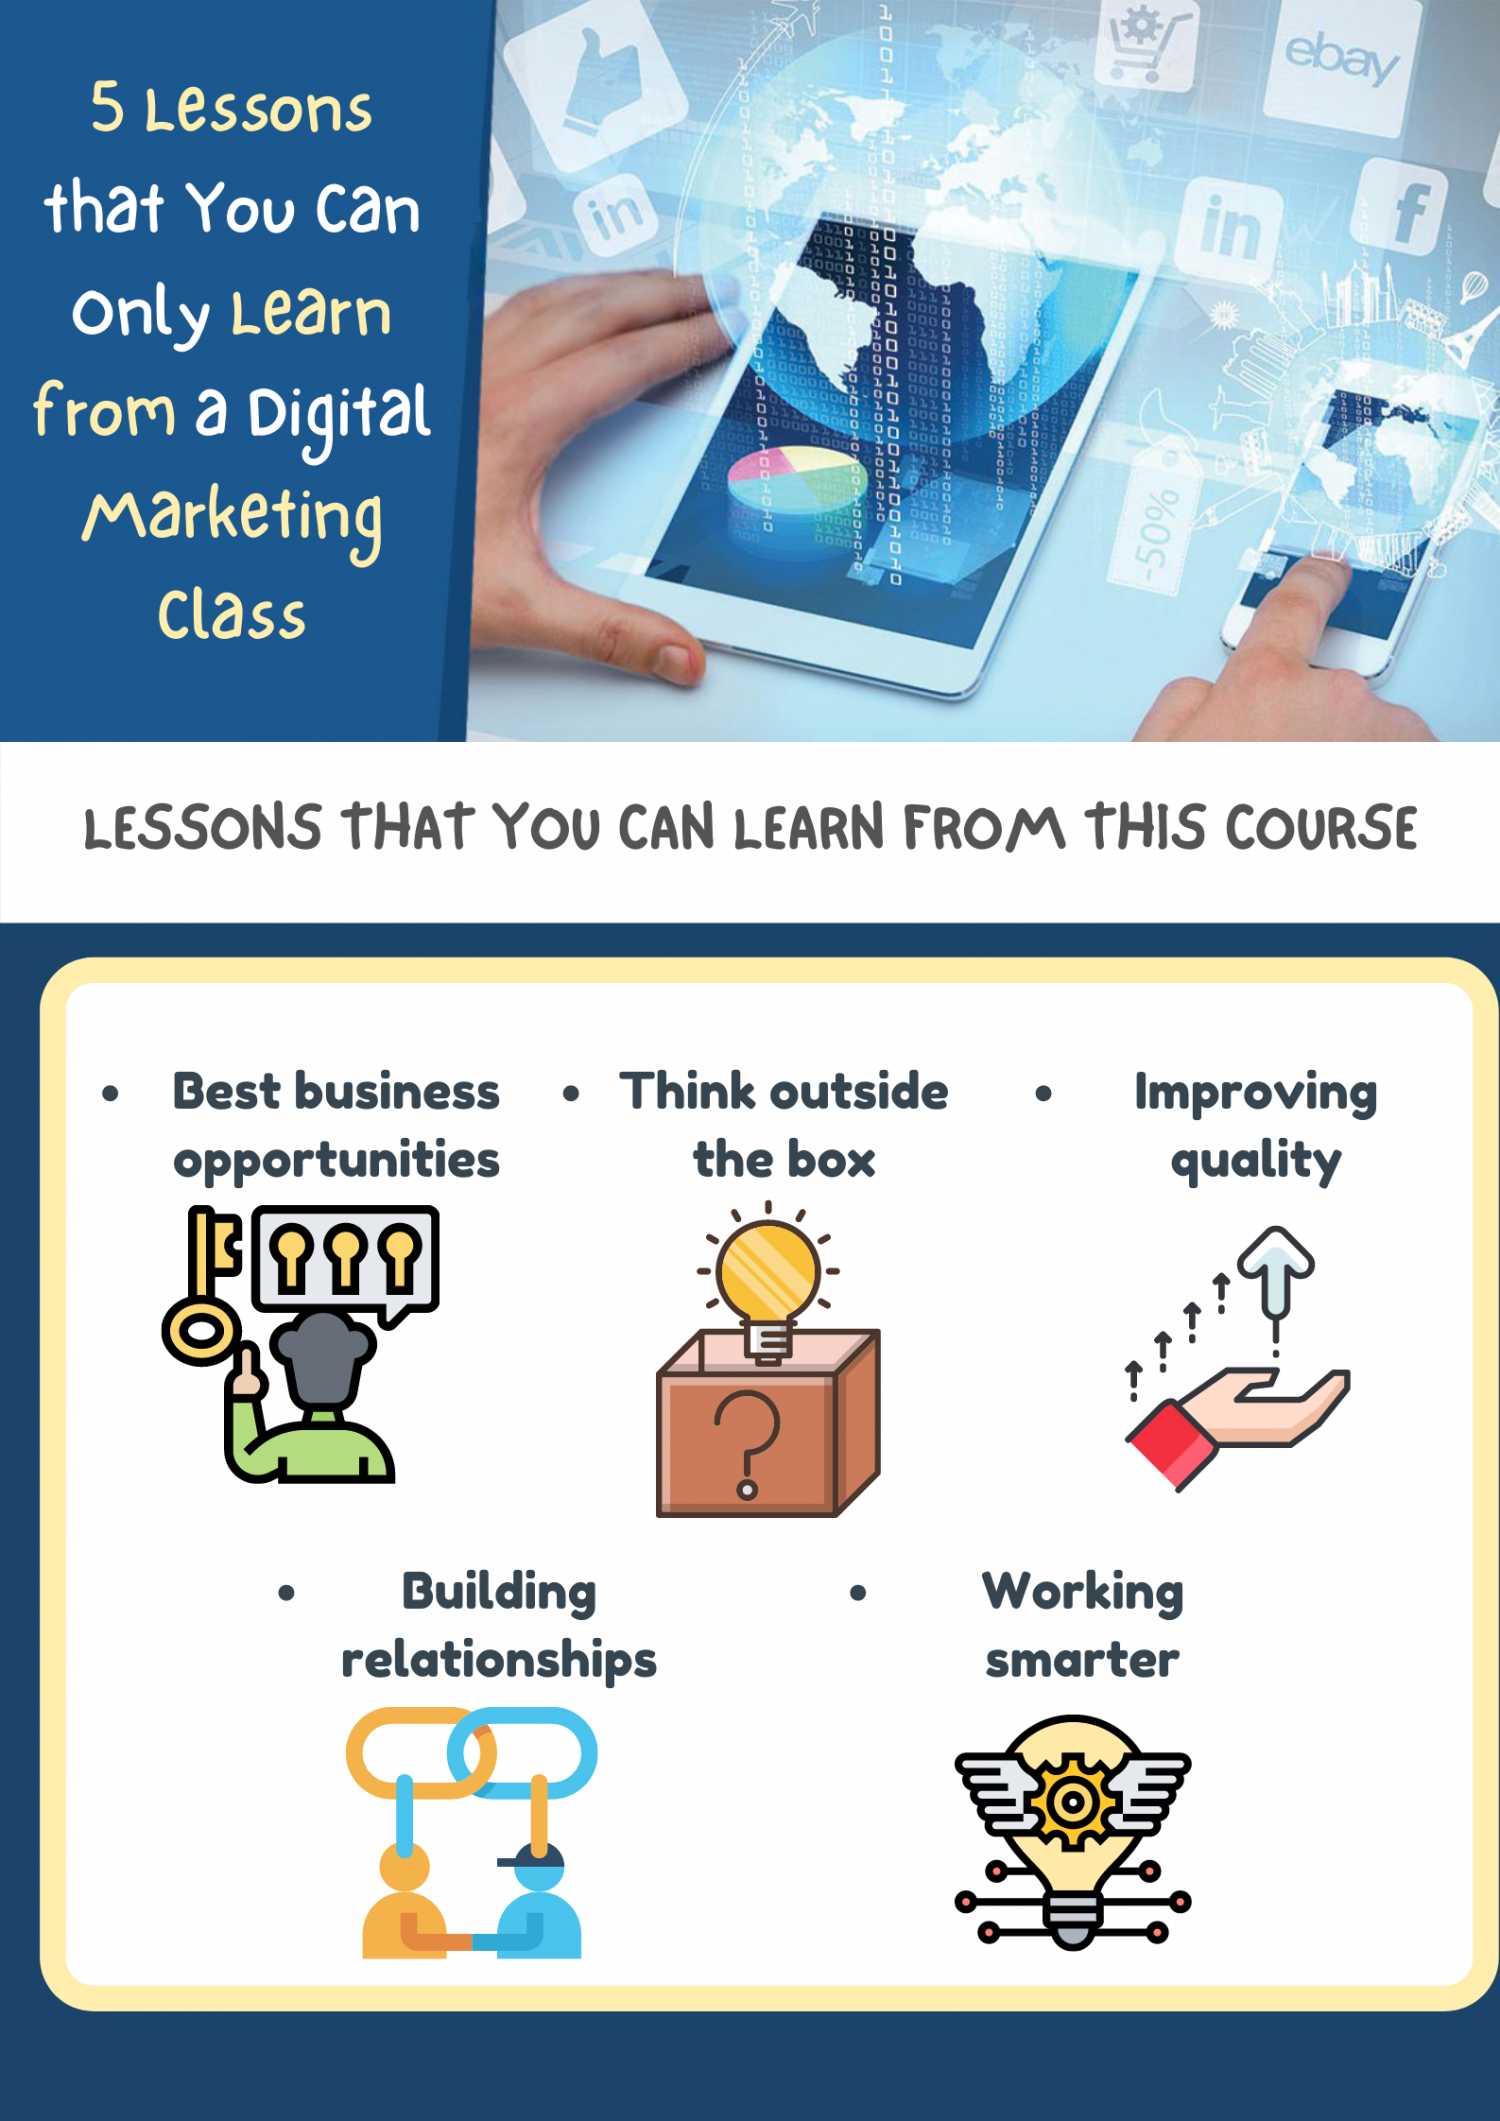 5 Lessons that You Can Only Learn from a Digital Marketing Class Infographic